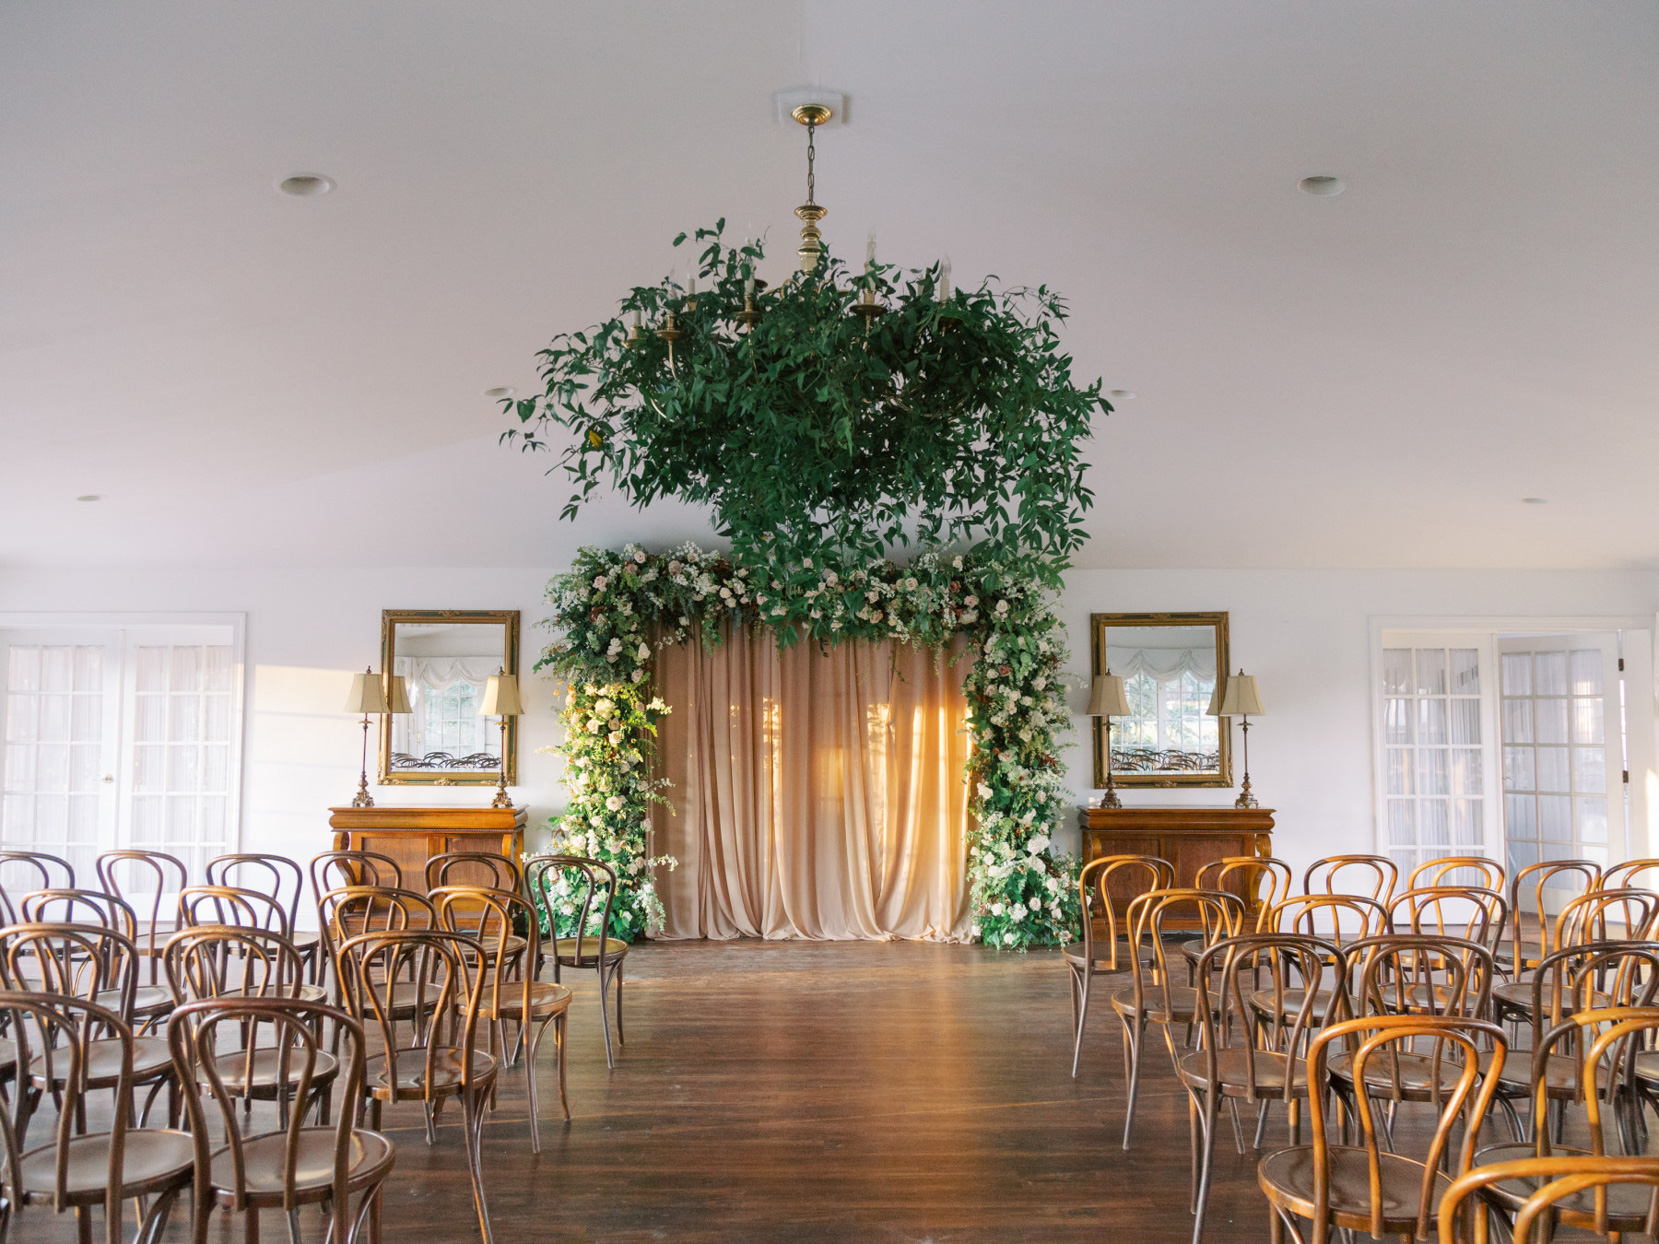 elegant indoor ceremony setting with floral arch and greenery chandelier